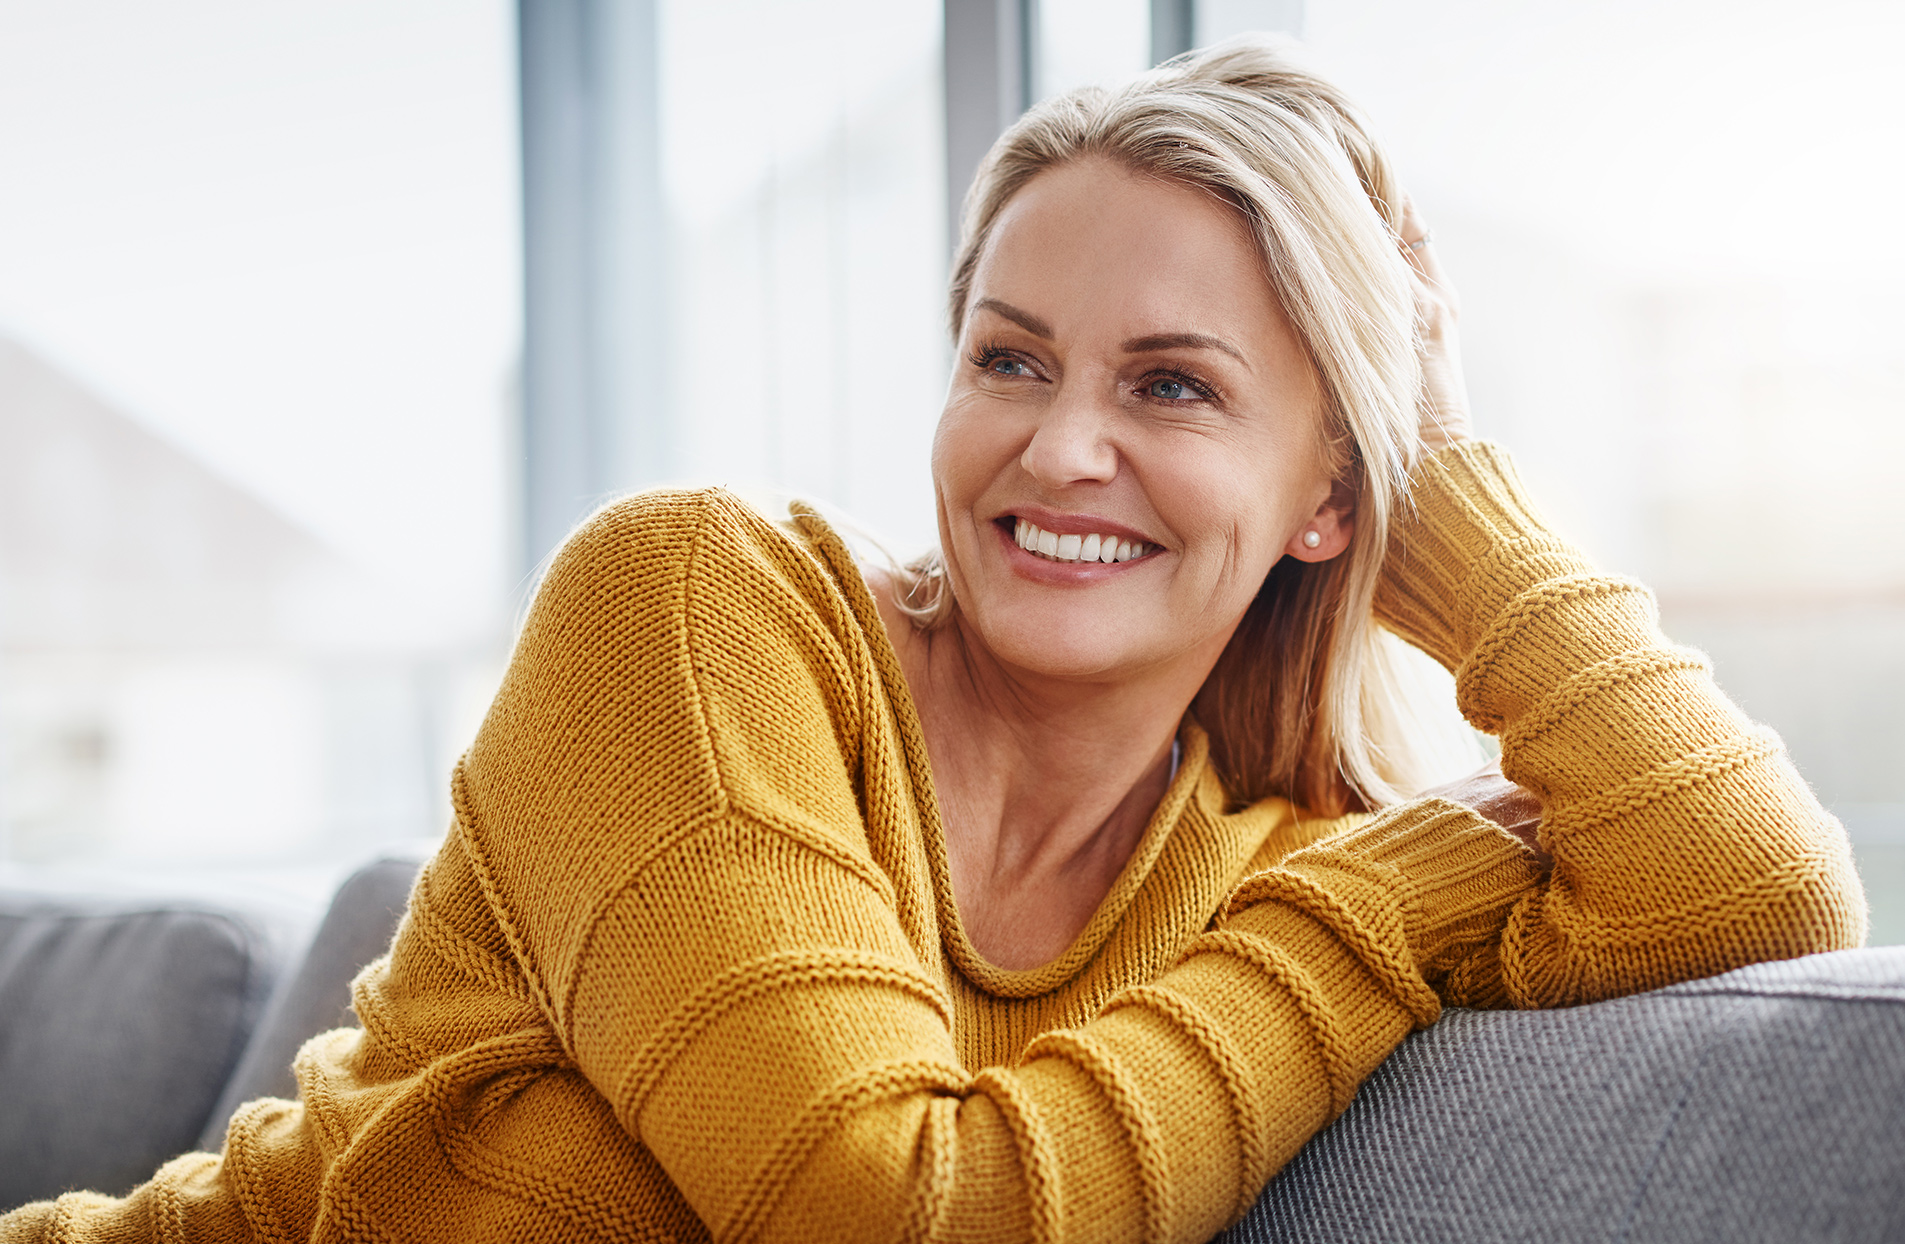 smiling woman wearing yellow sweater and seated on sofa